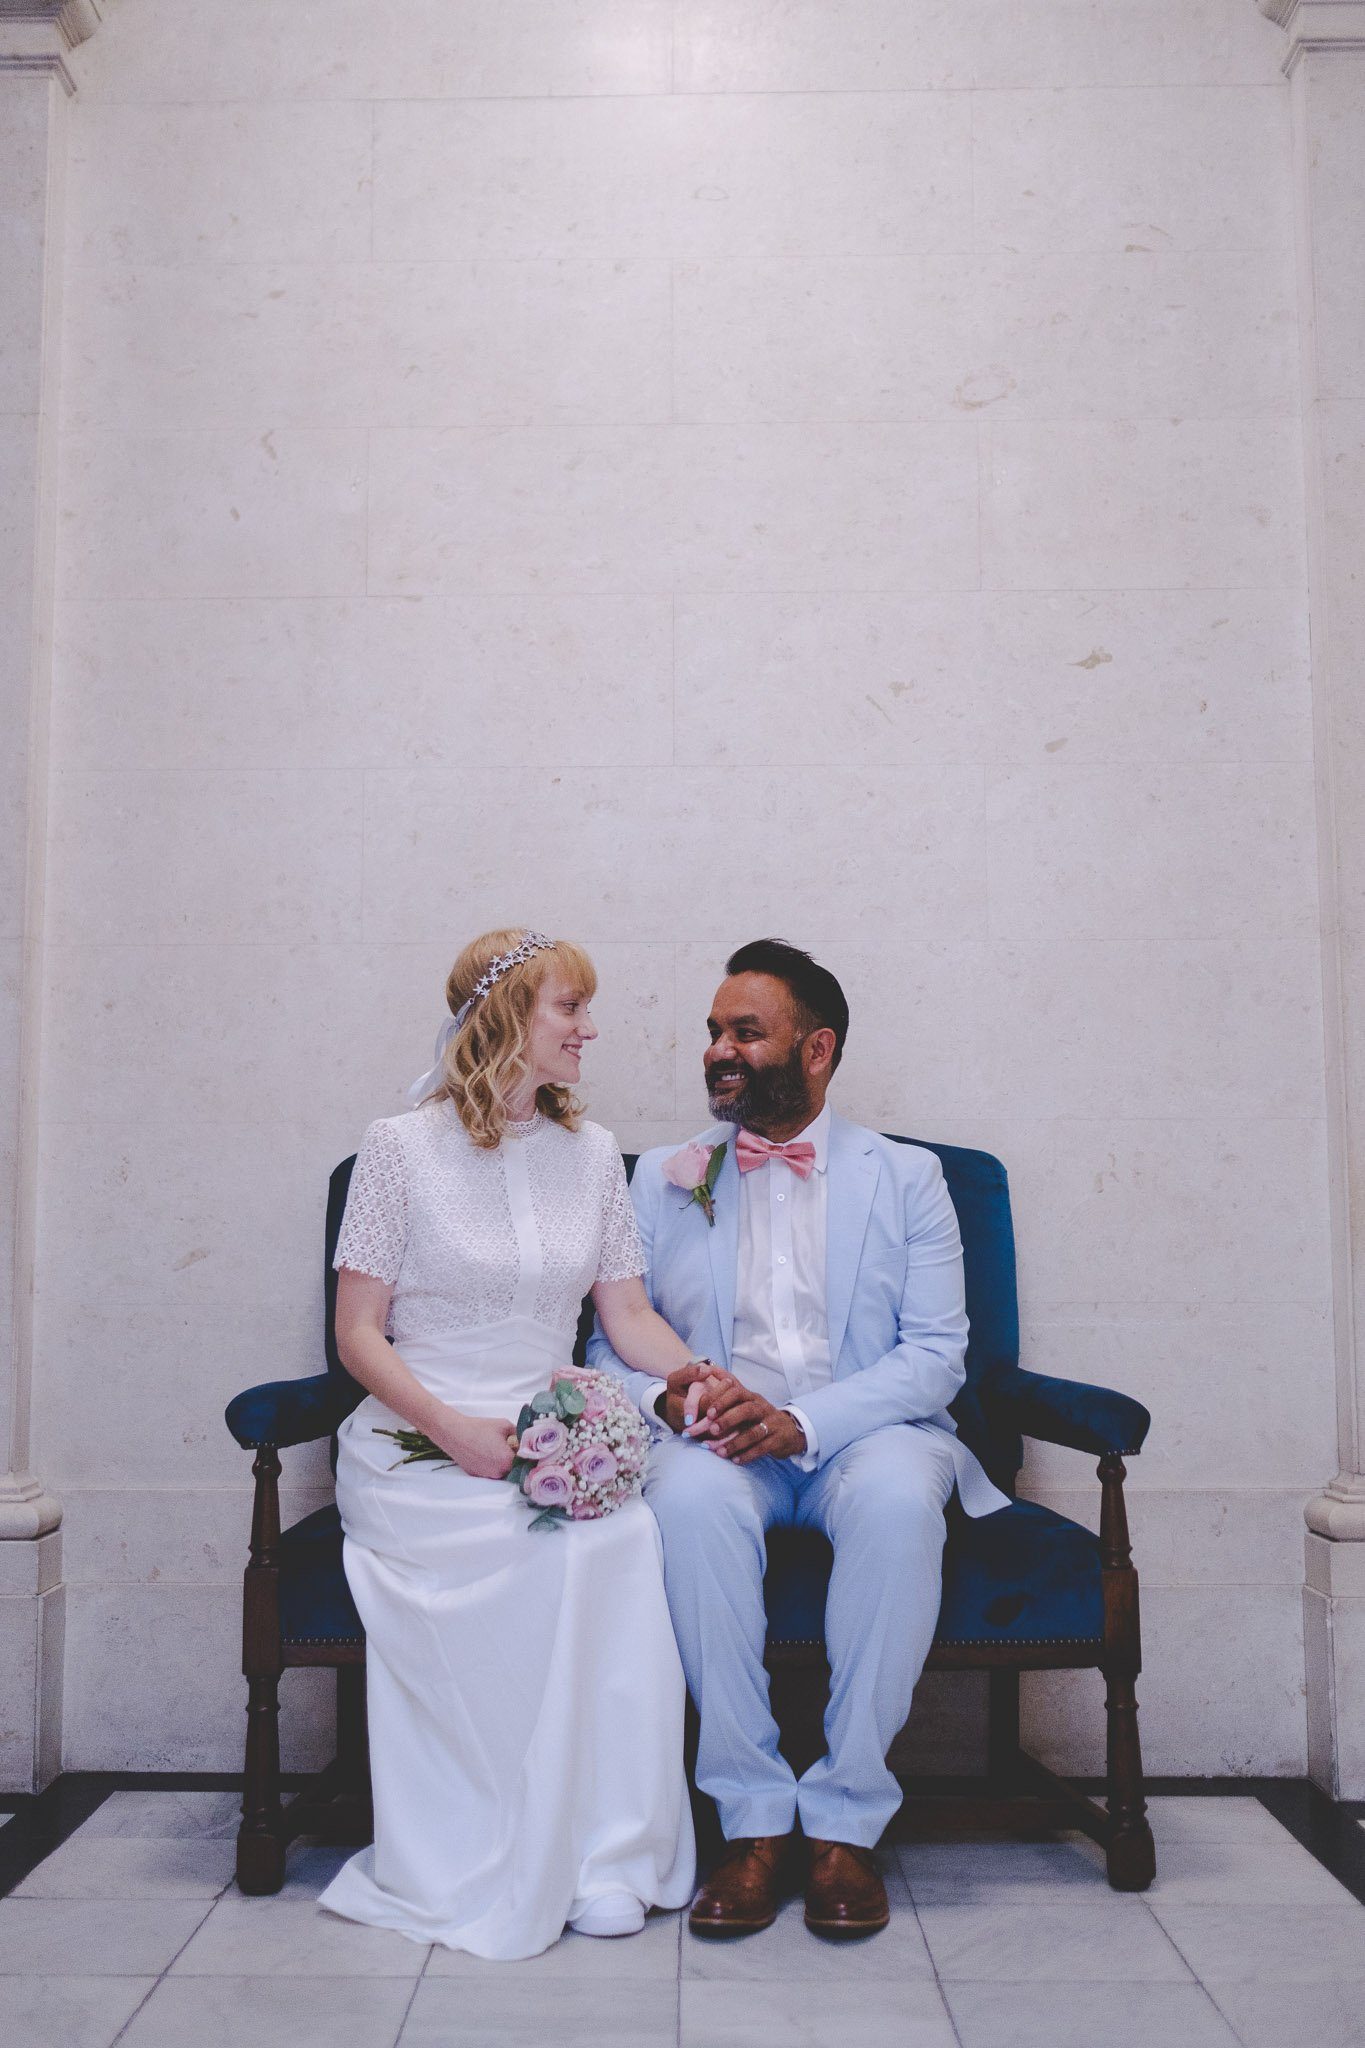 Creative portrait of a bride & groom seated in the Old Marylebone Town Hall London. Photography by thatthingyoupluck.